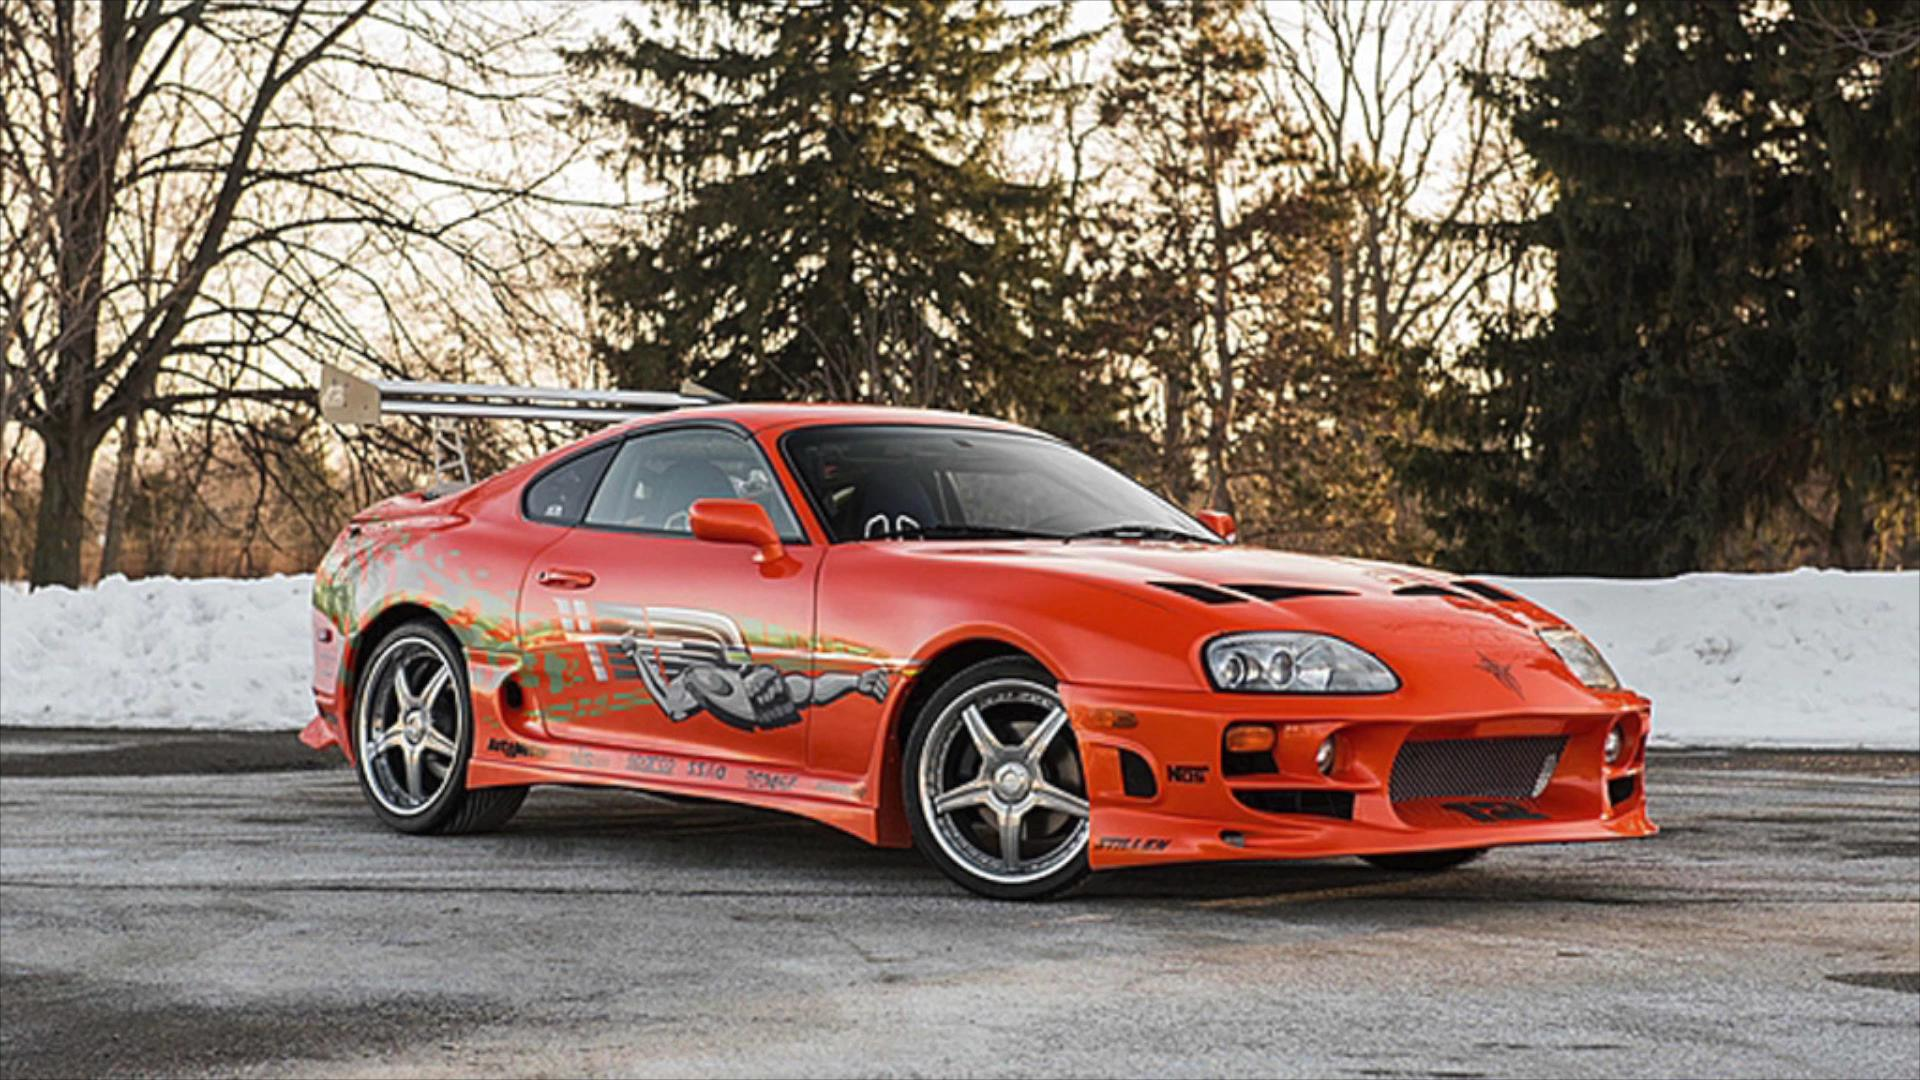 Paul Walker-driven \'Fast and the Furious\' car up for sale